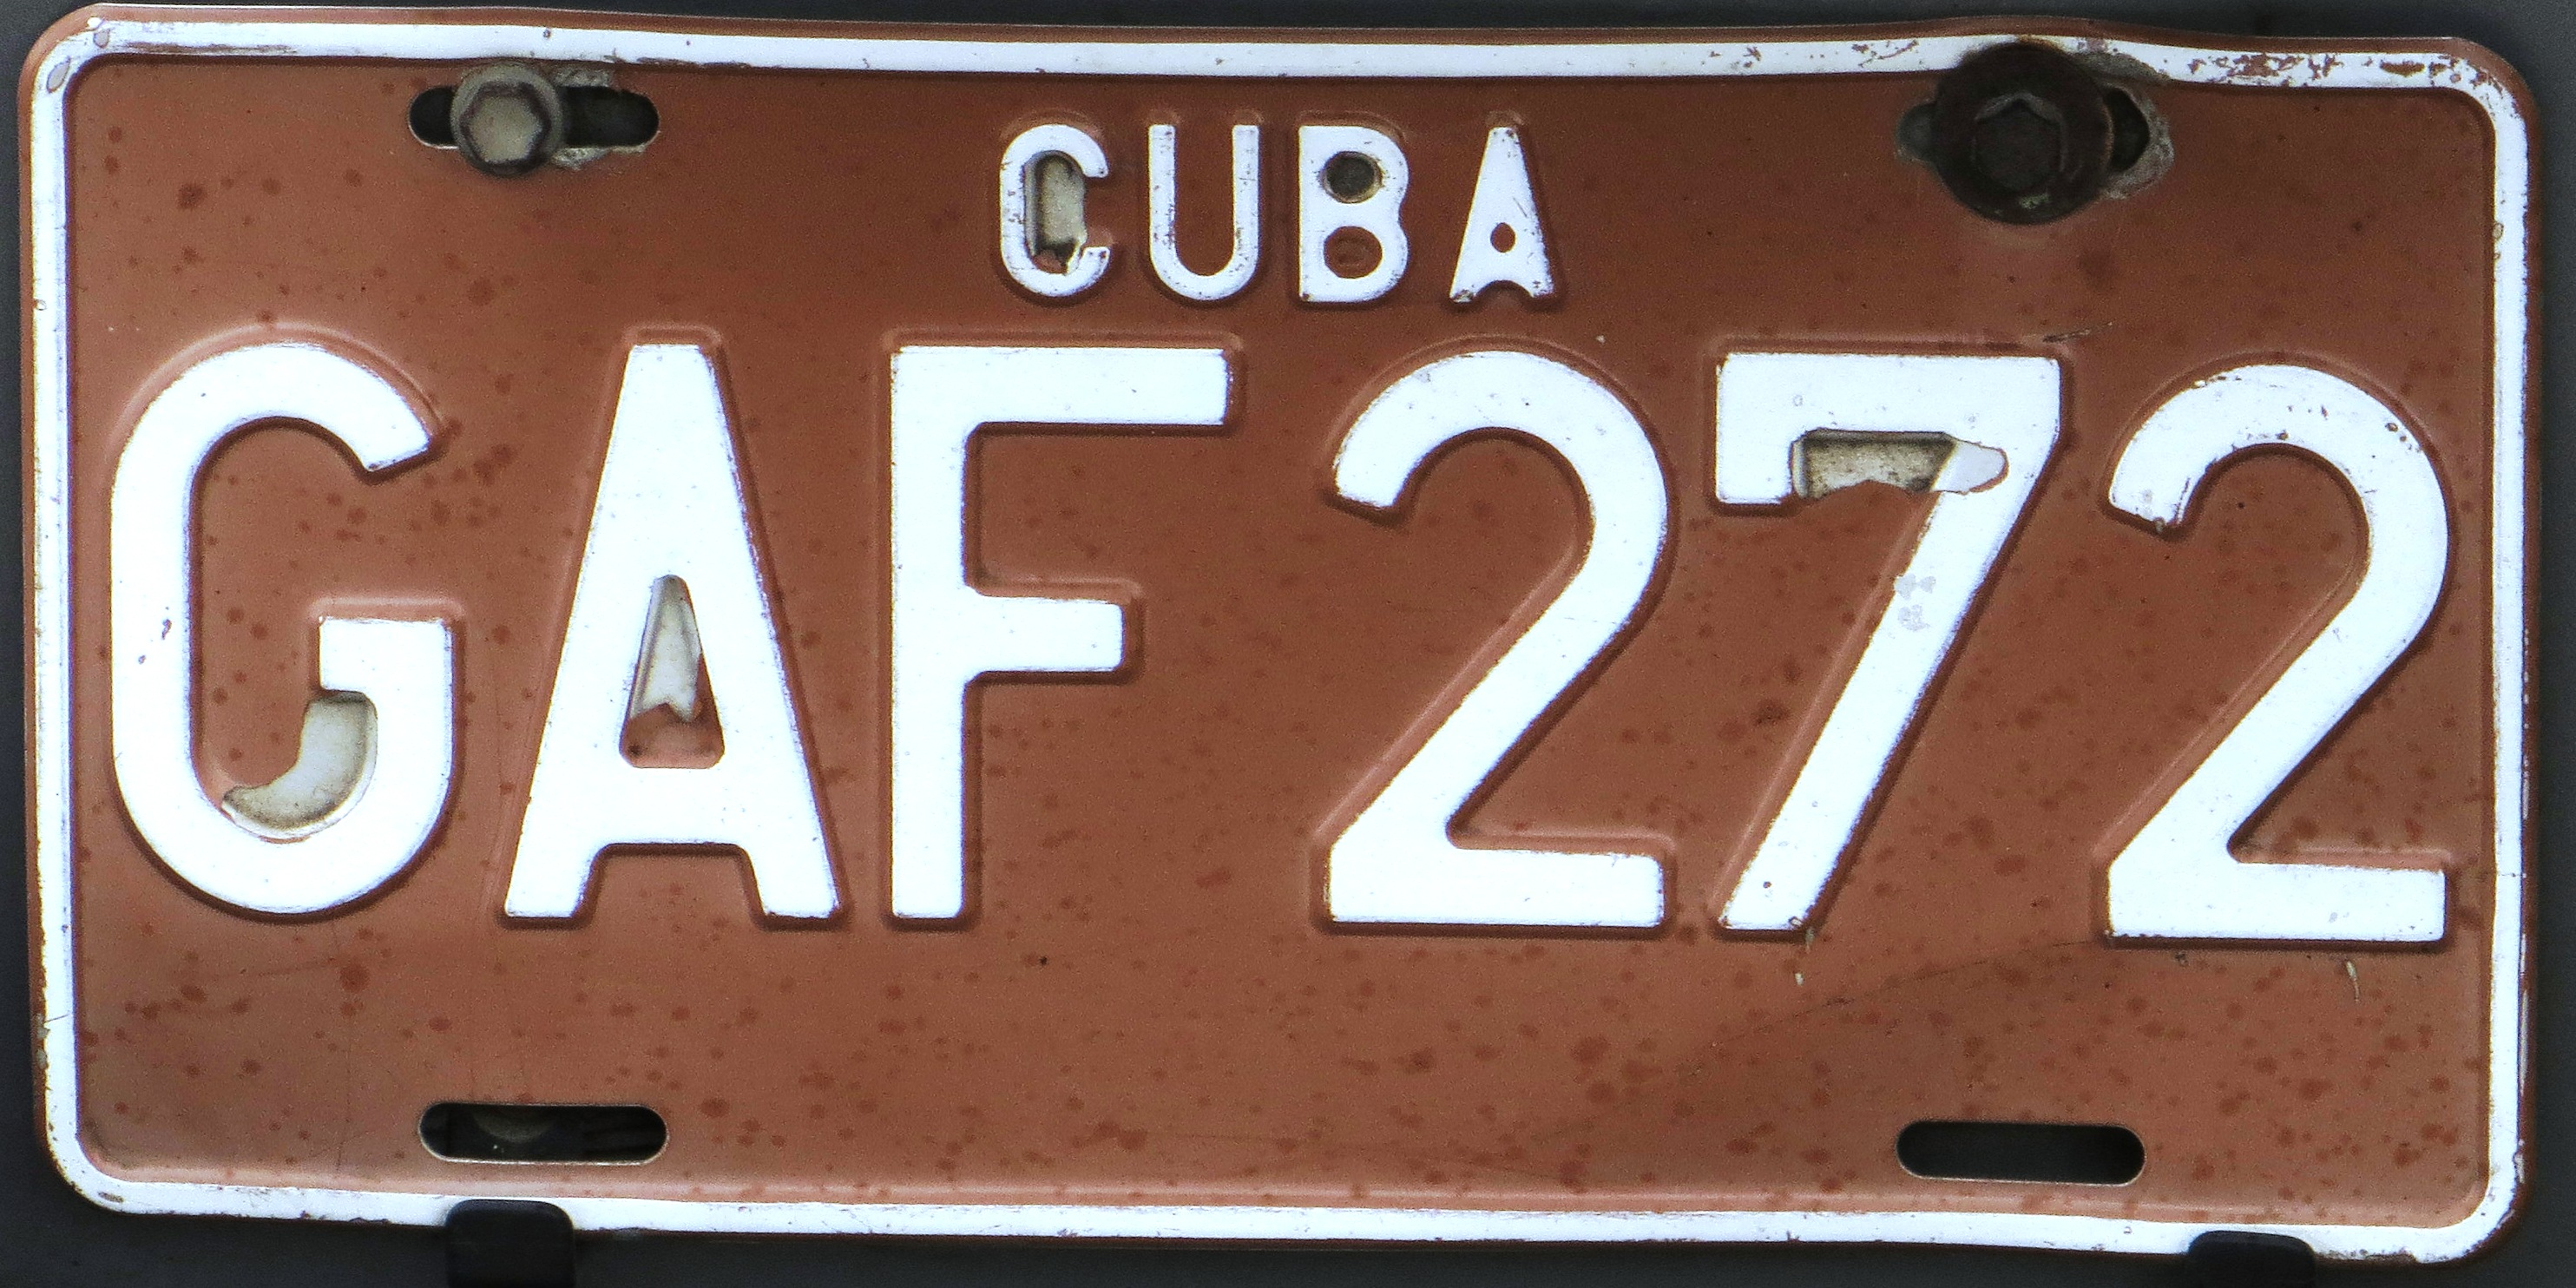 File:License plate of Cuba 2002 joint venture company Granma GAF 272.jpg